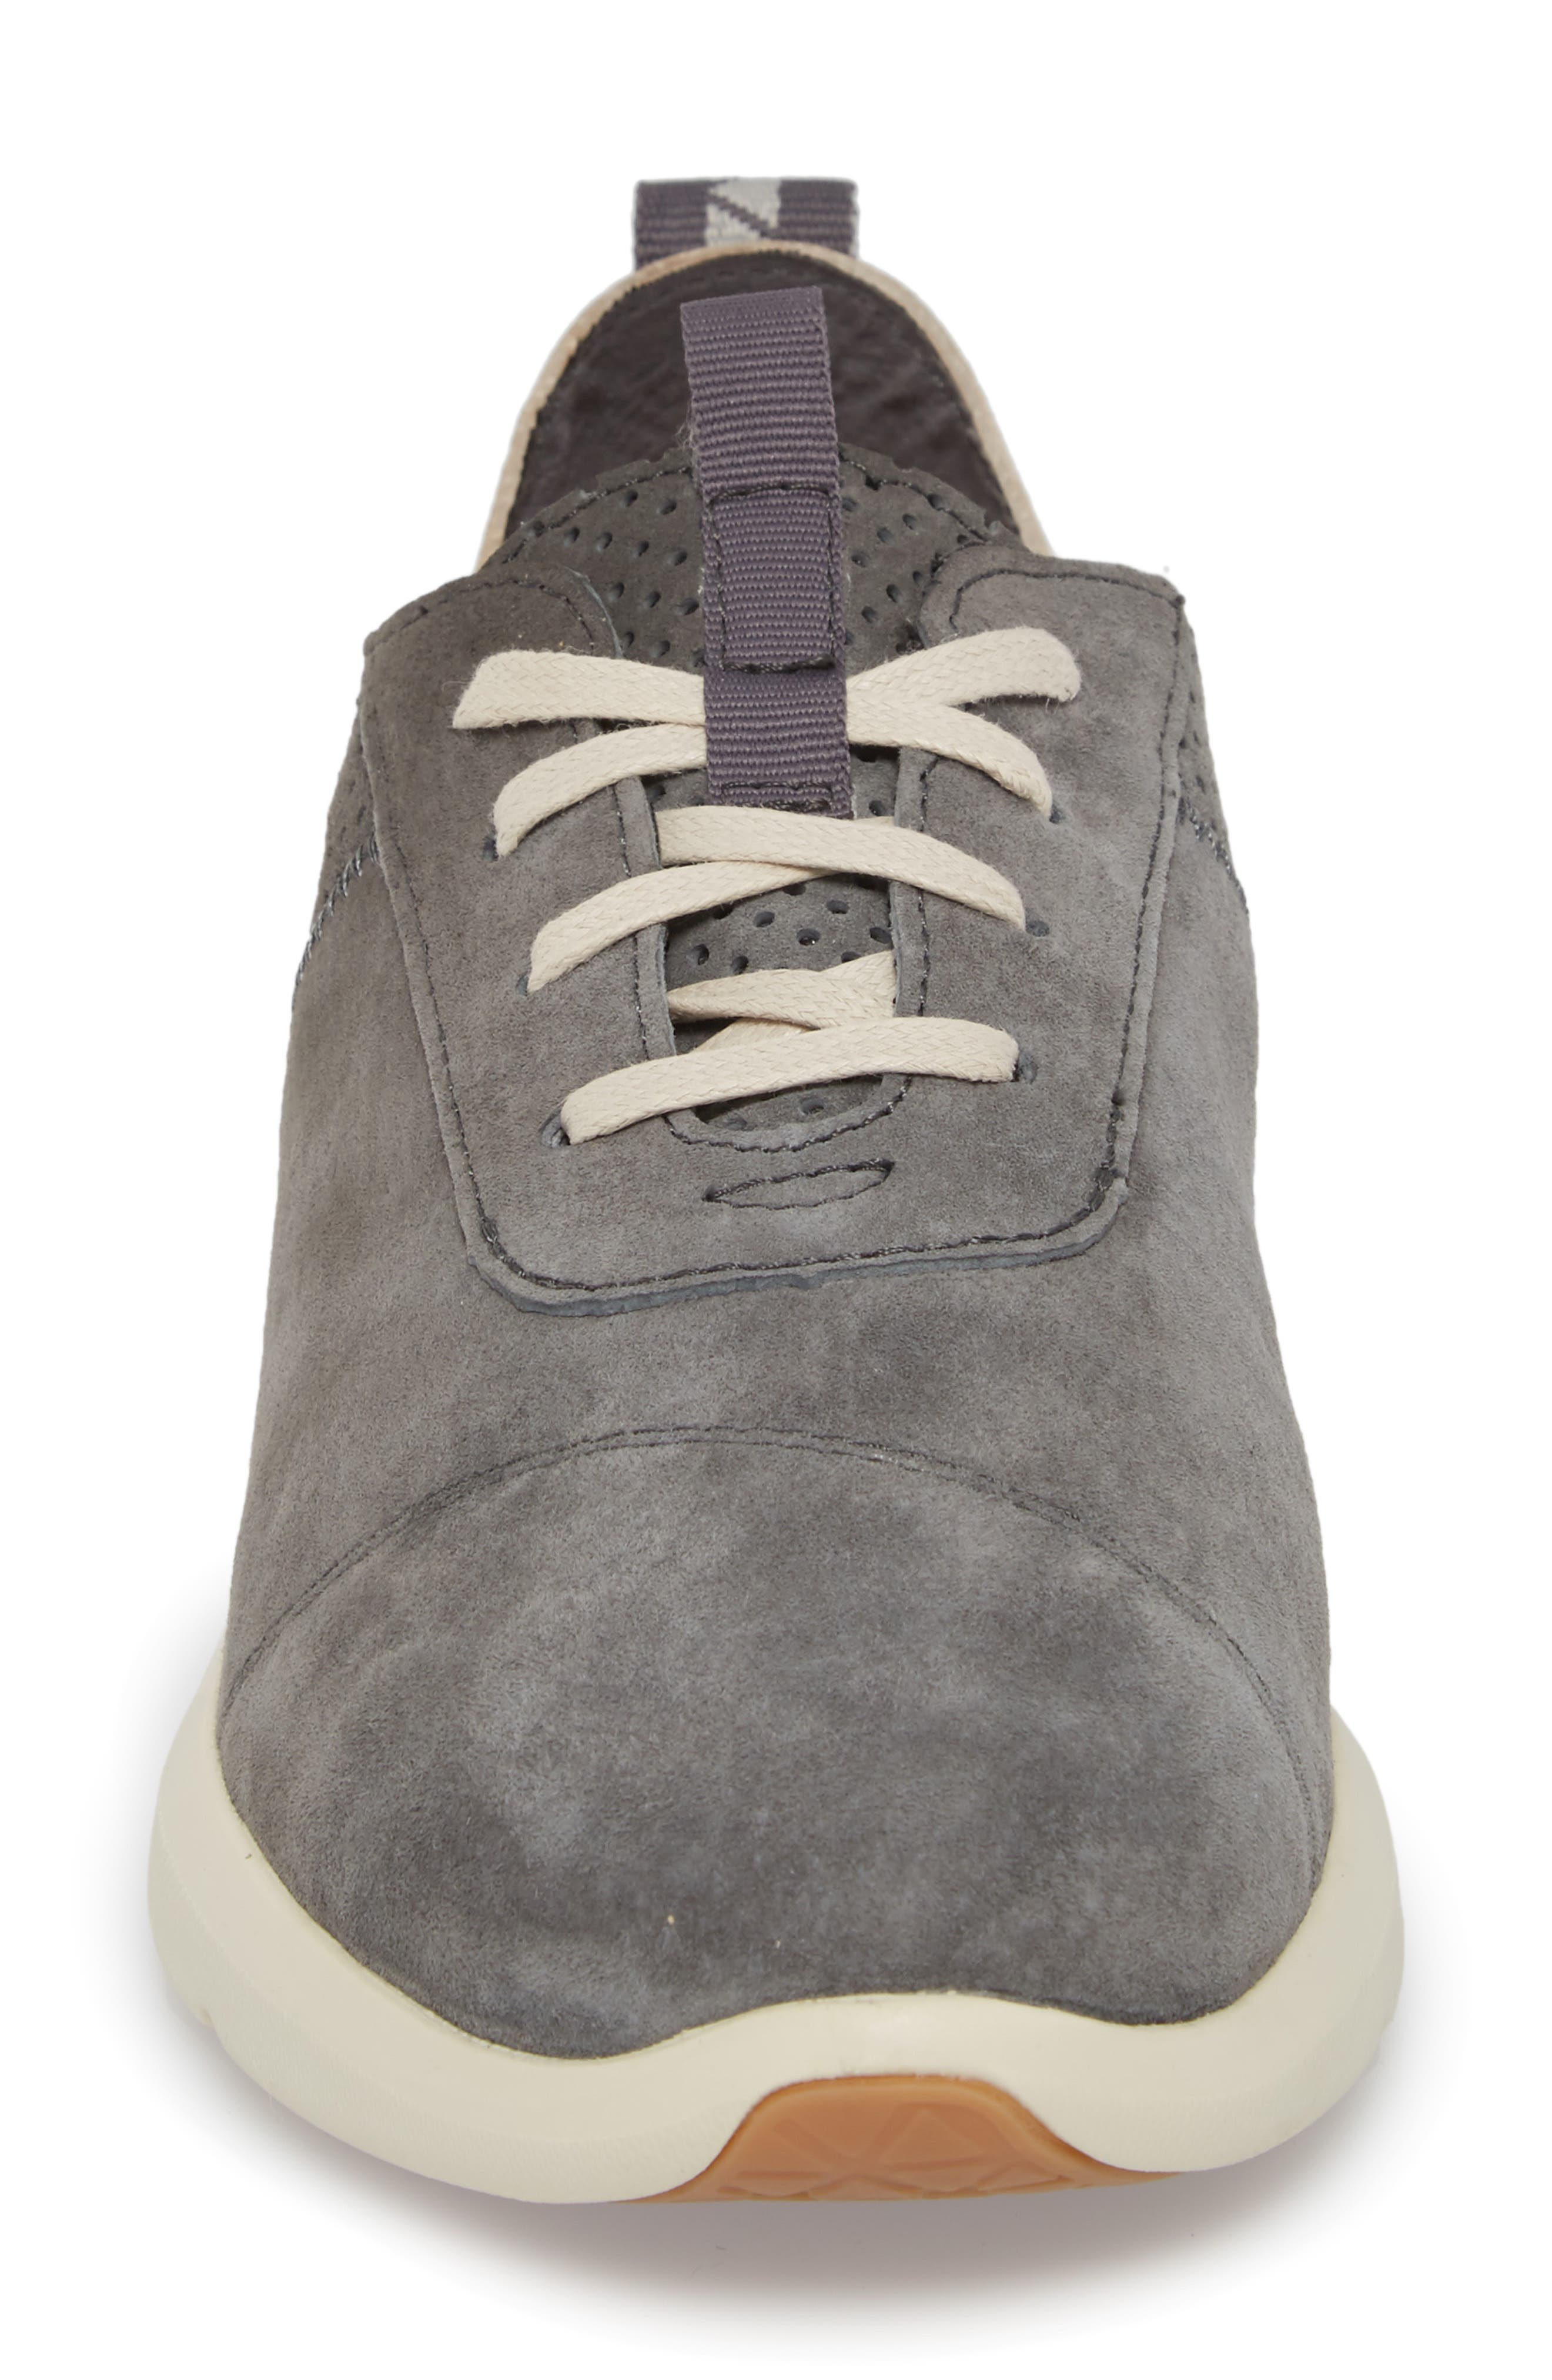 Cabrillo Perforated Low Top Sneaker,                             Alternate thumbnail 4, color,                             Shade Suede